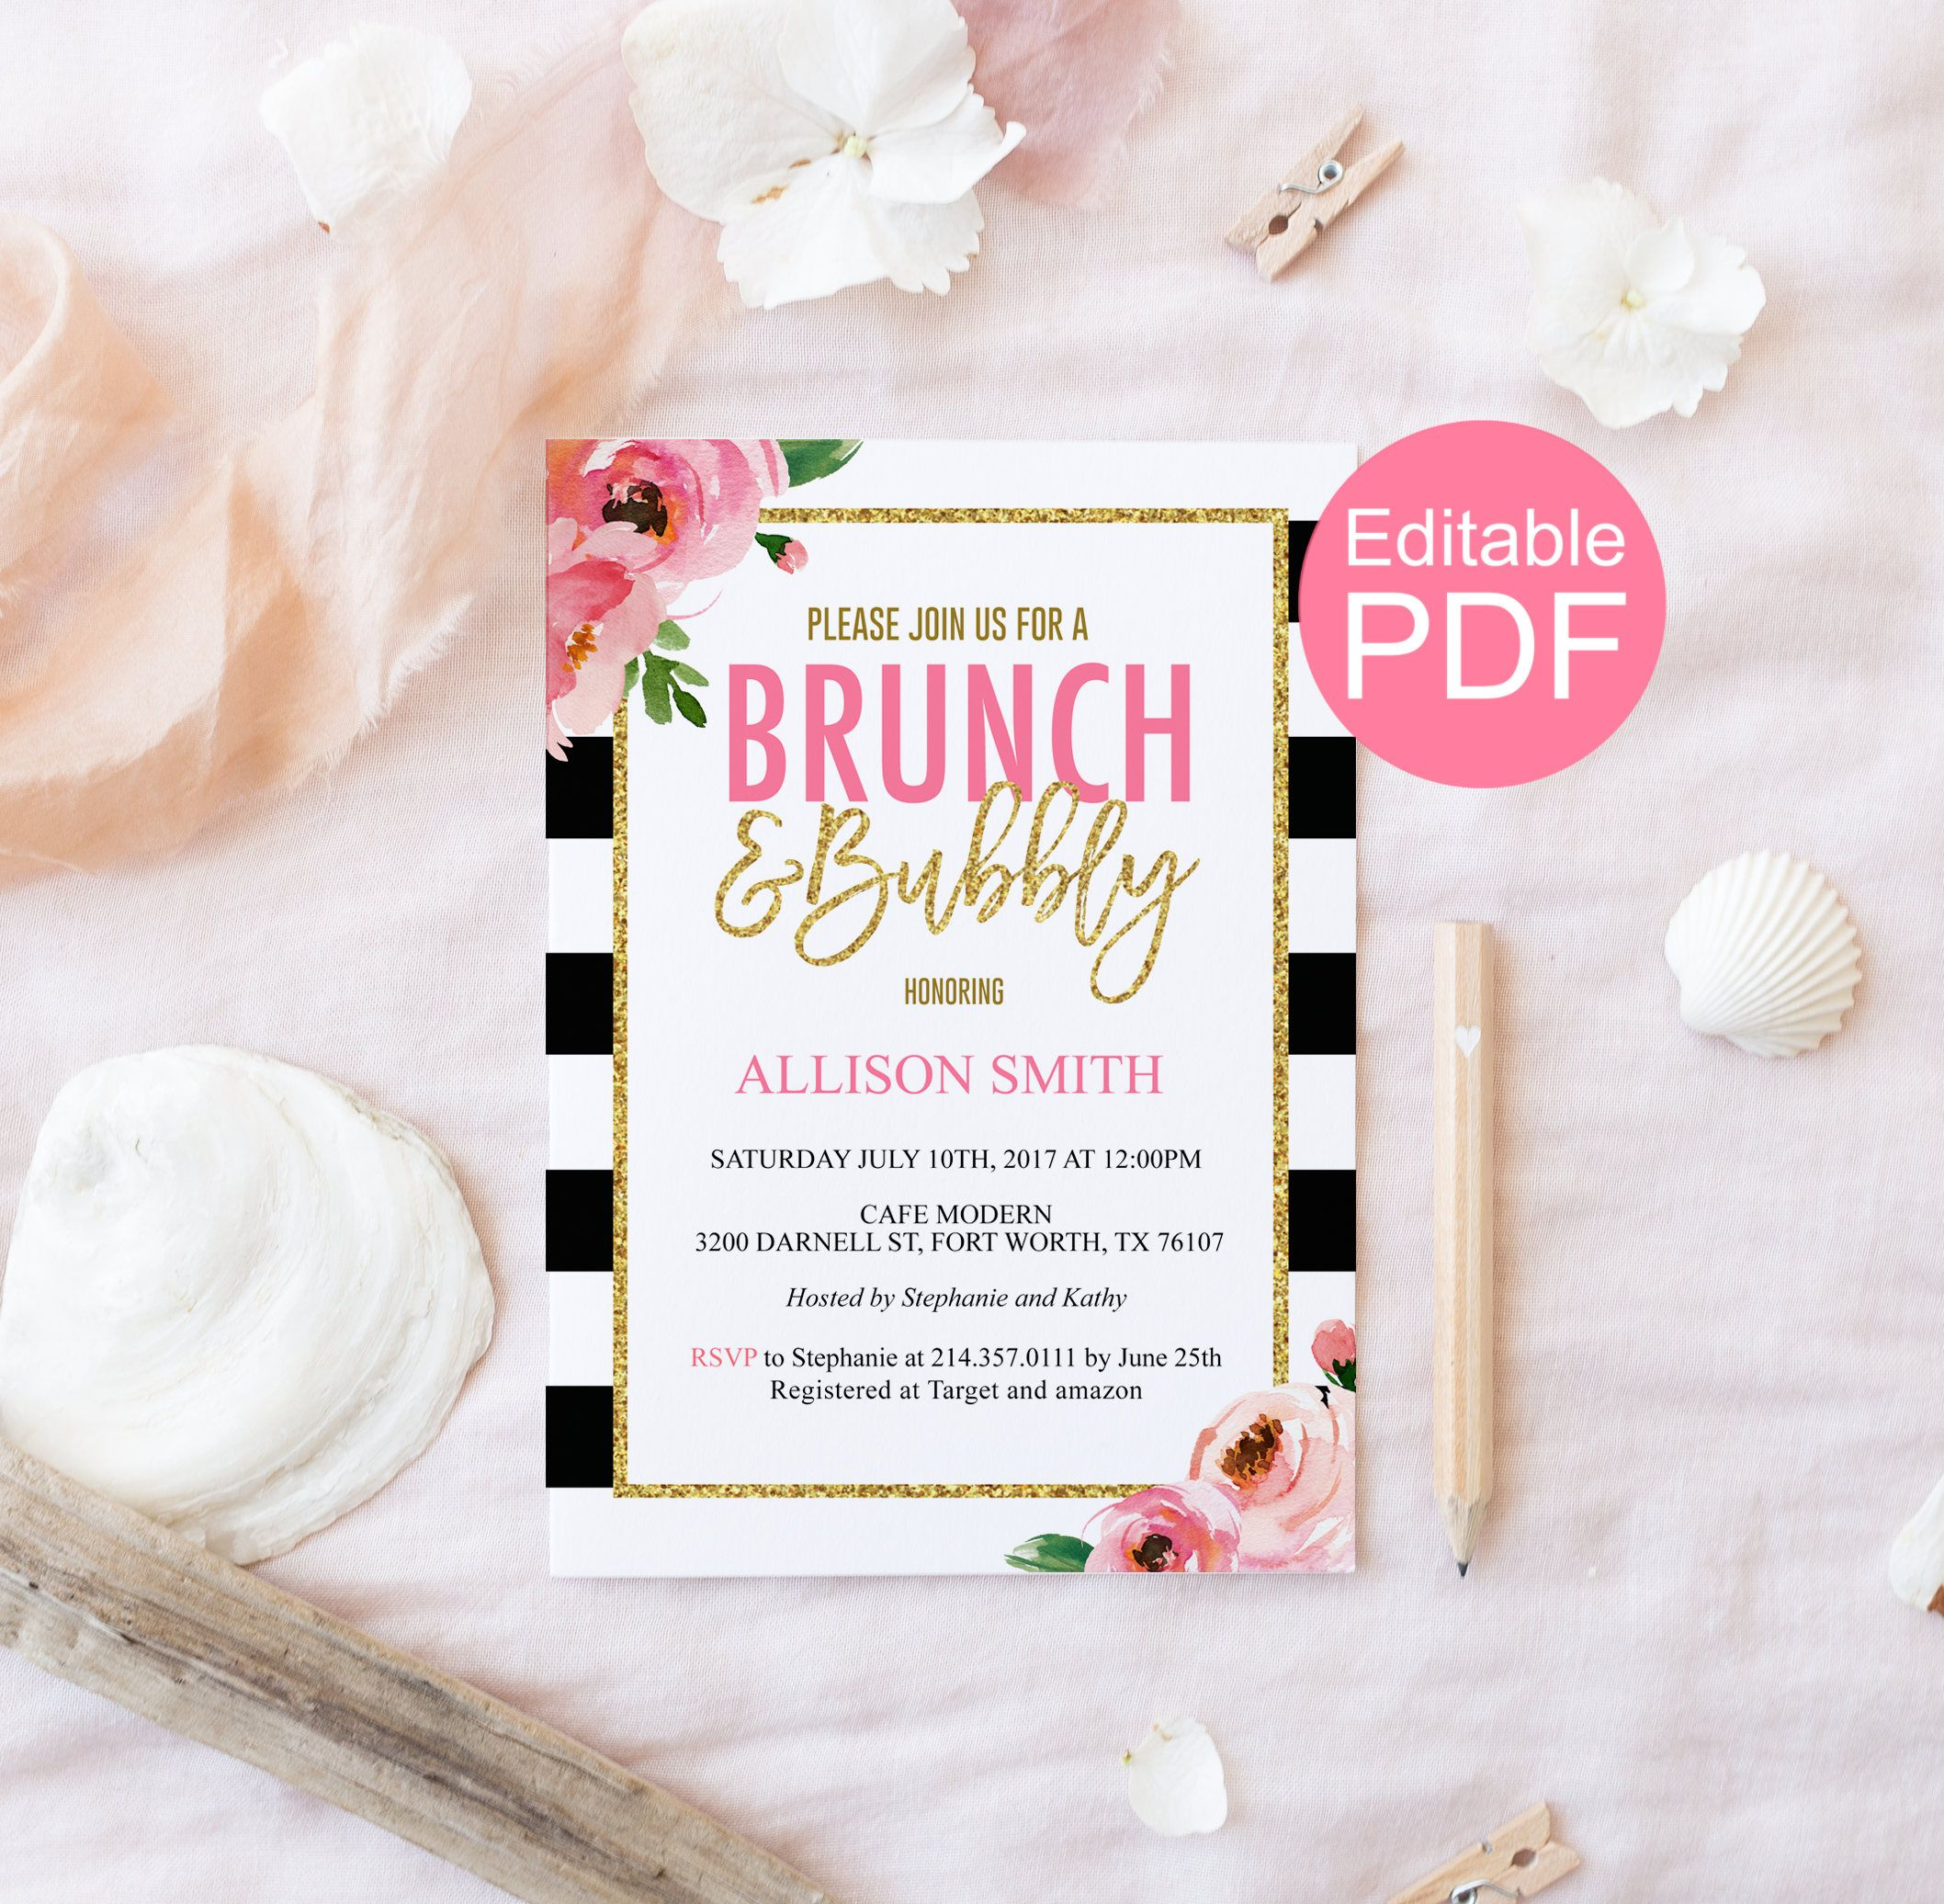 Brunch And Bubbly Invitation Template Kate Bridal Shower Etsy Bridal Brunch Invitations Invitation Template Etsy Bridal Shower